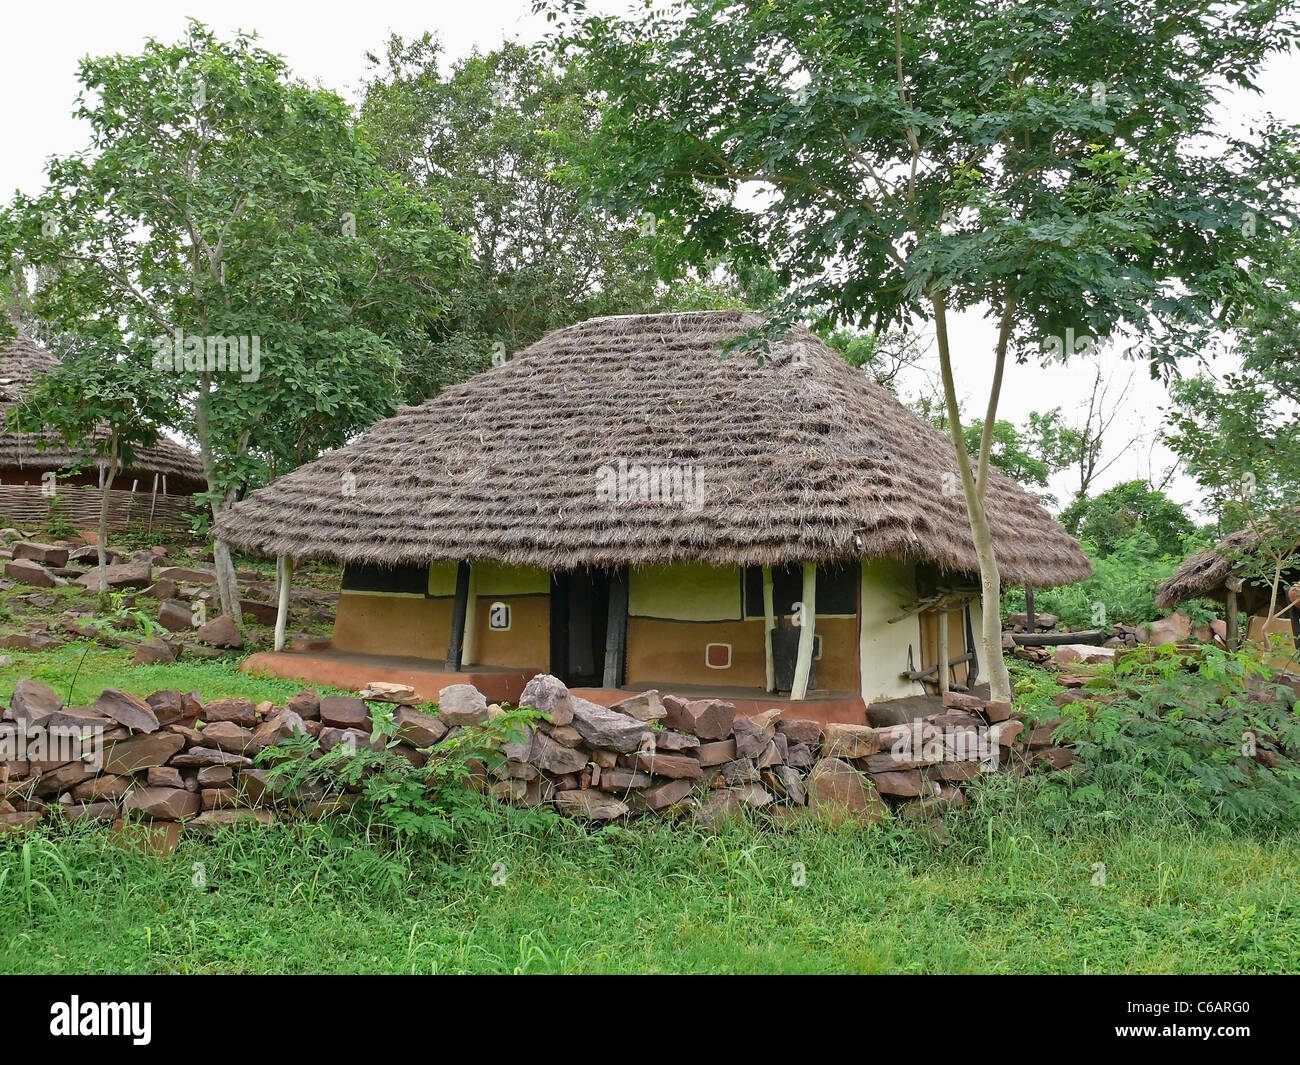 Mordien type house of Gadsbaa agriculturists, Tribal hut